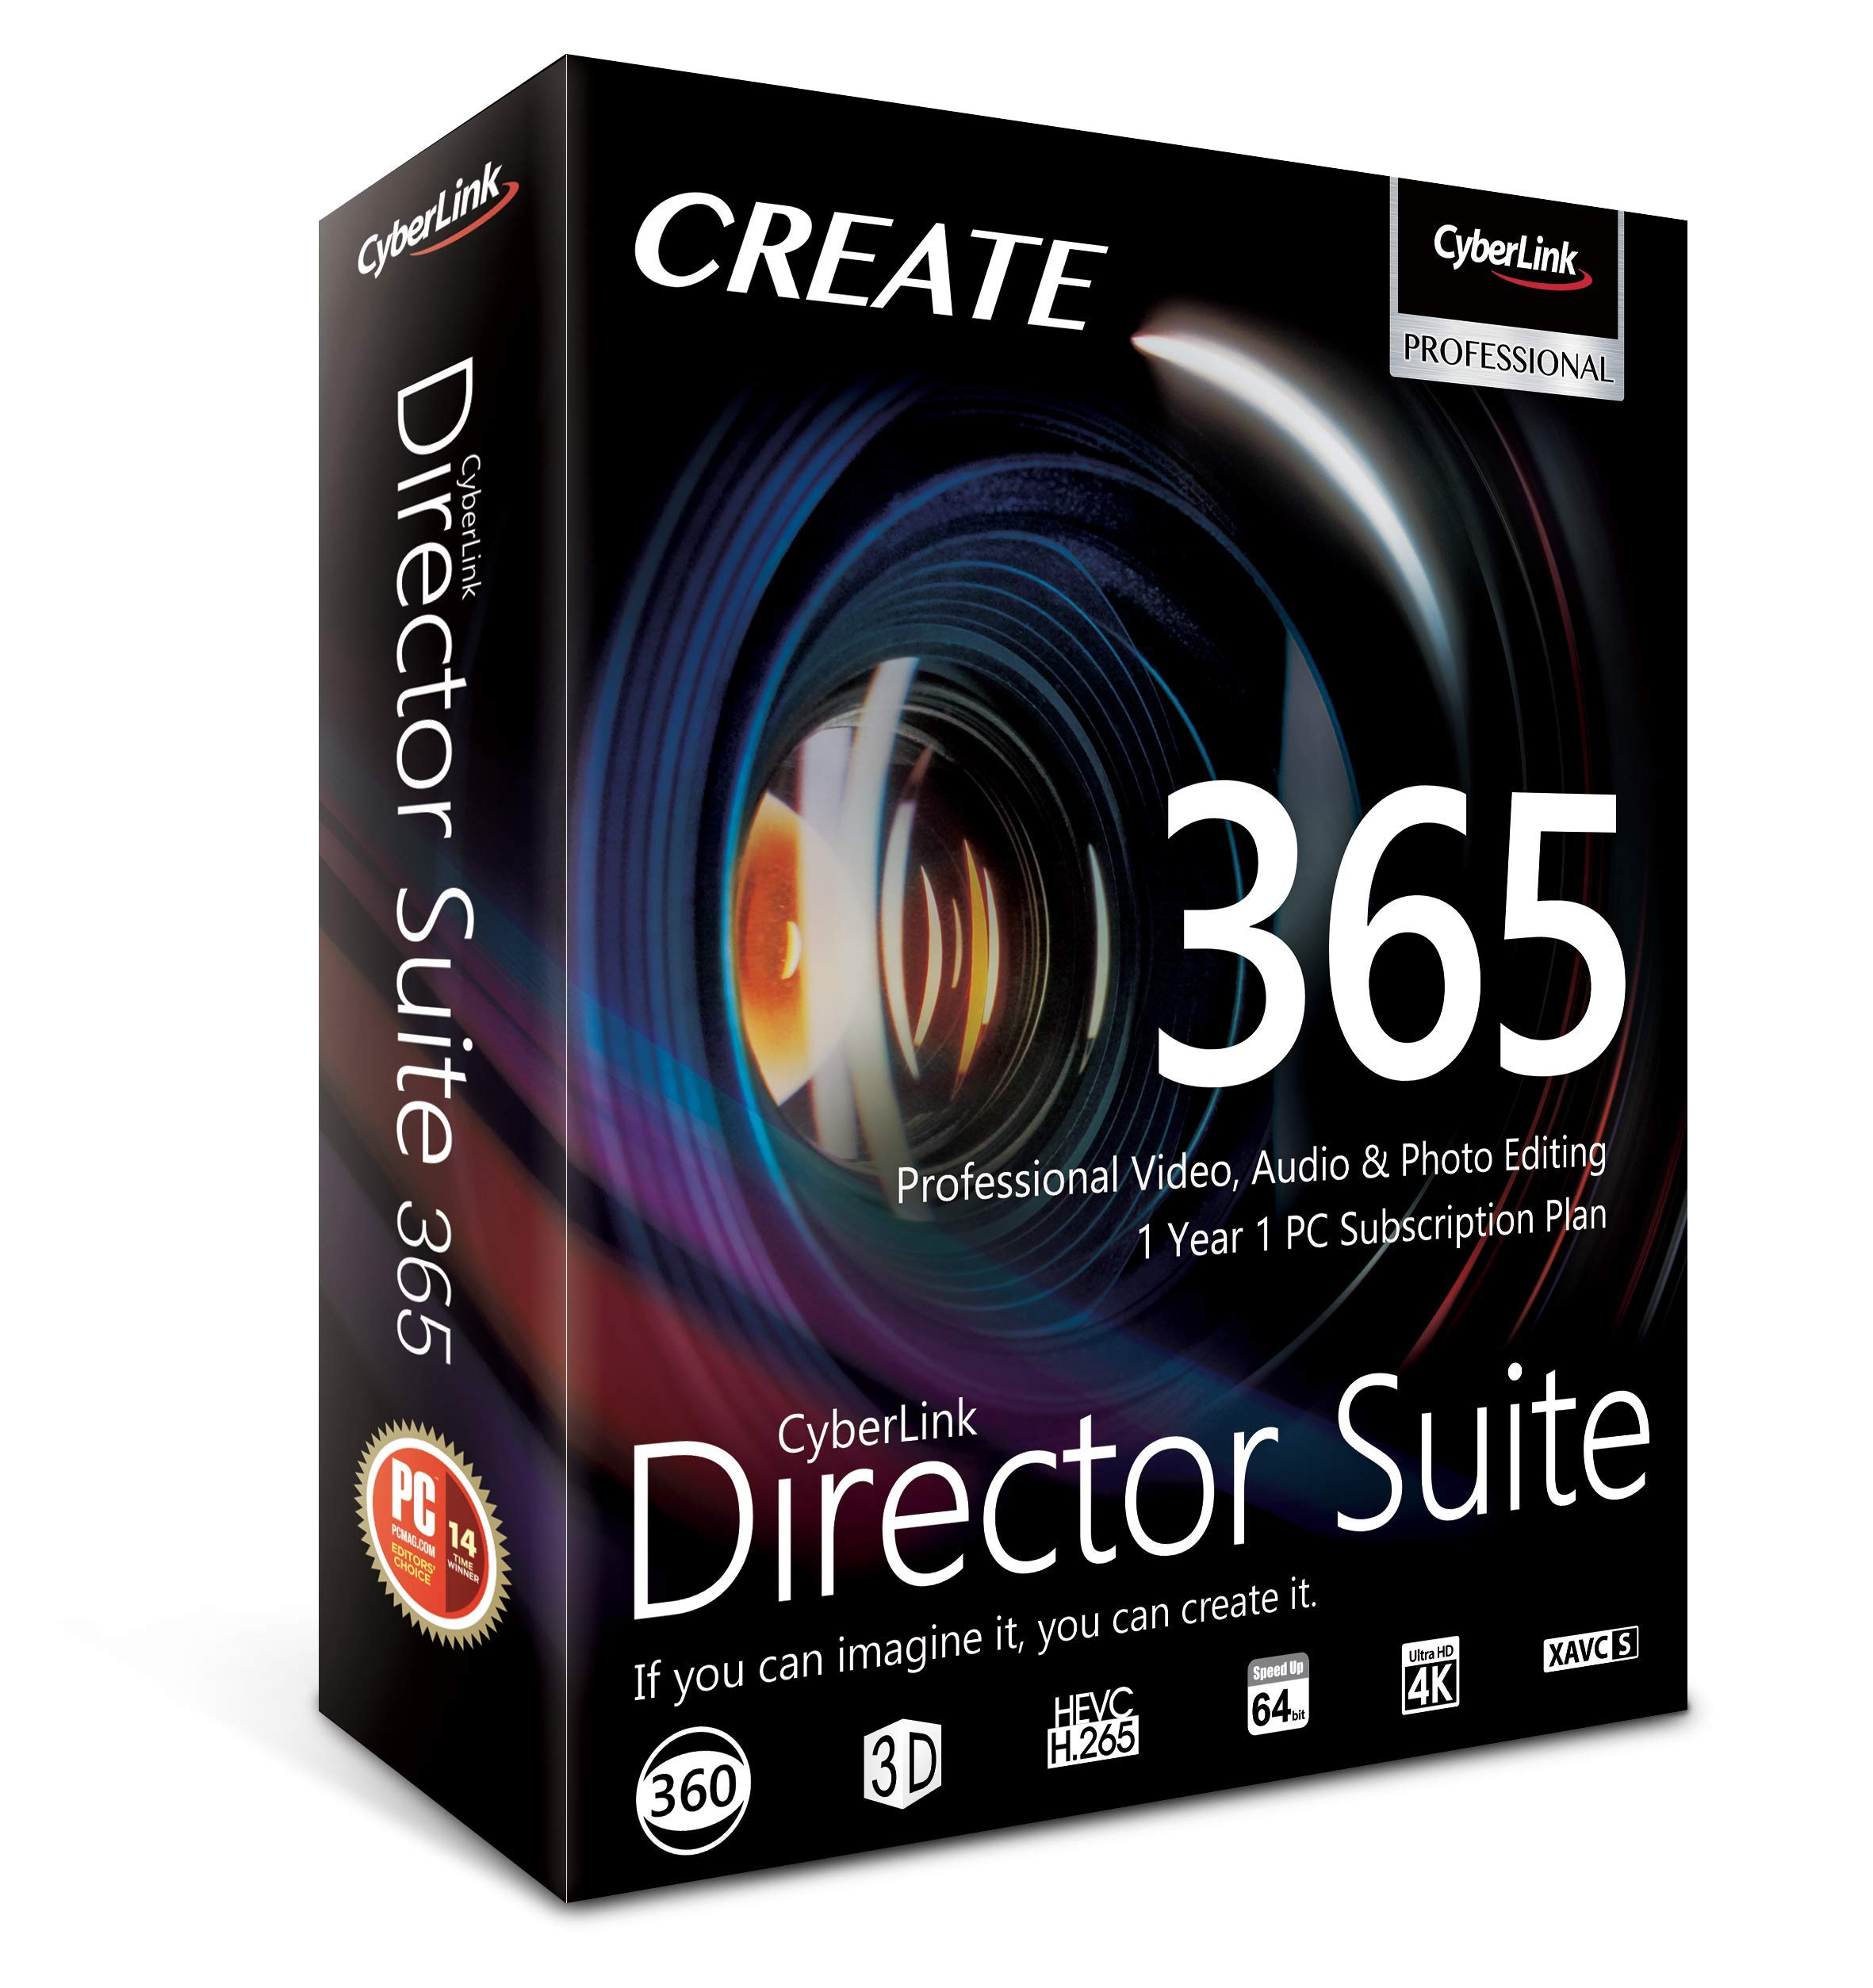 Cyberlink Director Suite 365 | 1 Year | 1 PC Subscription - Professional Video, Audio & Photo Editing by Cyberlink